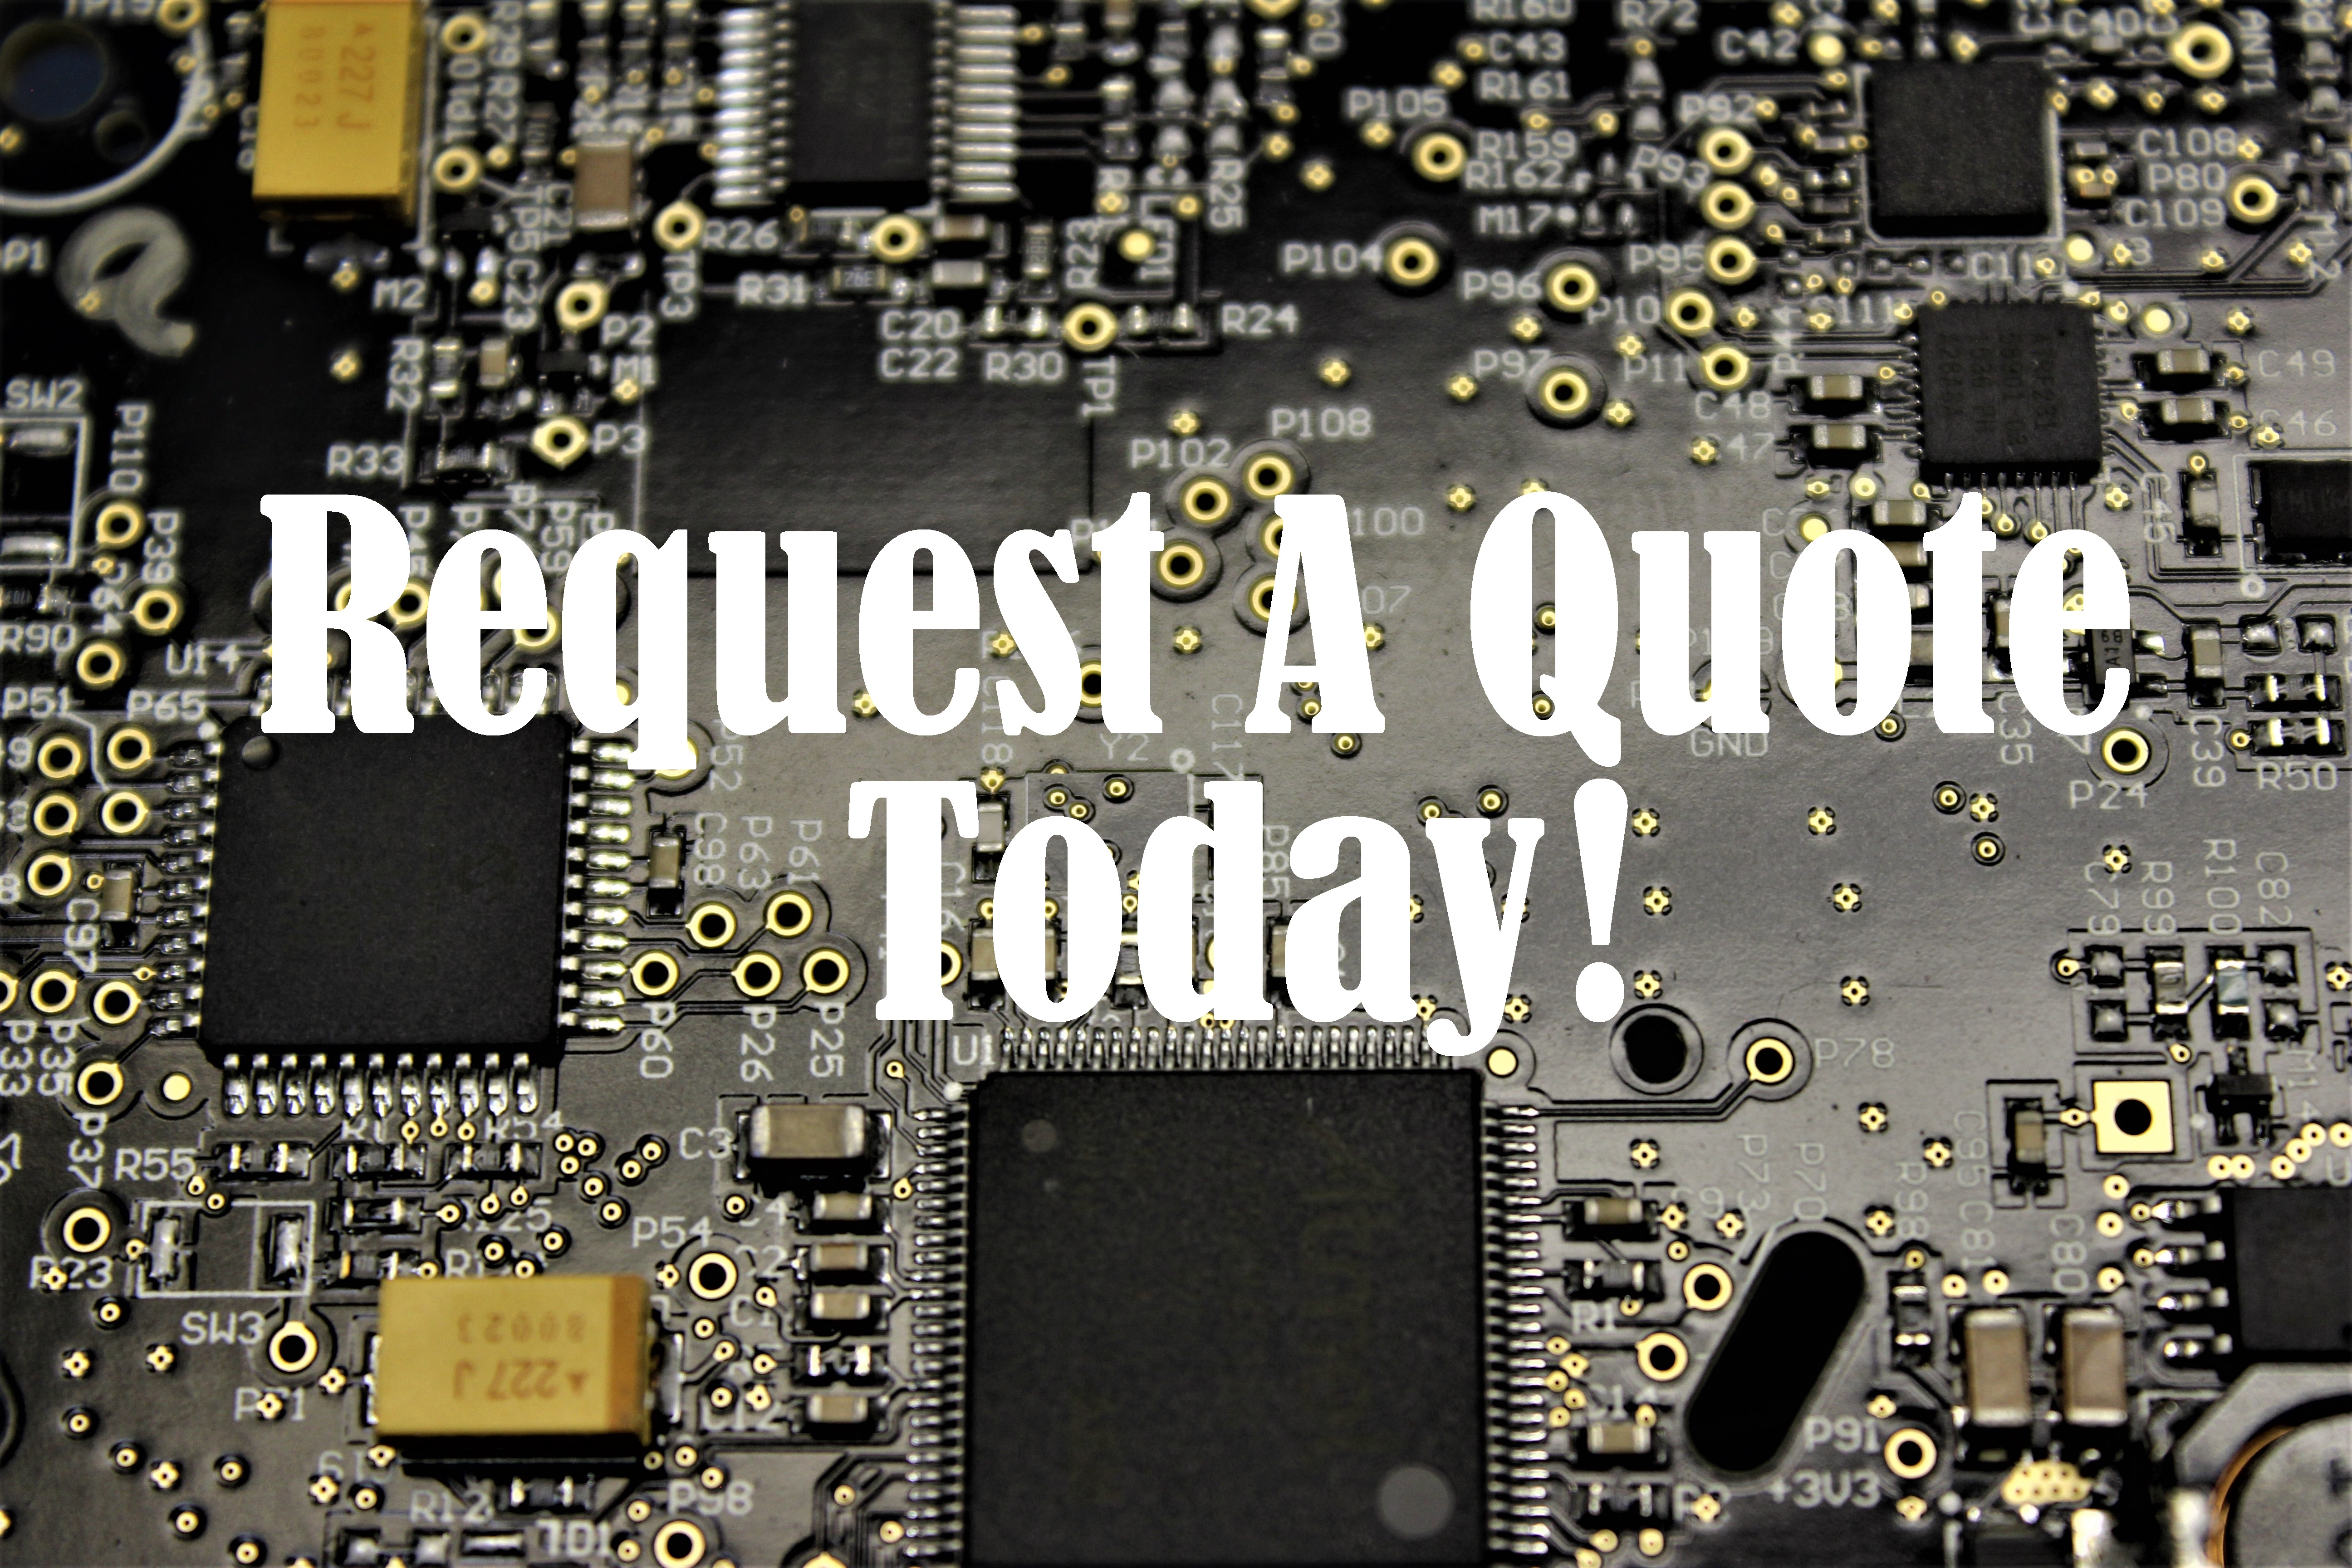 PCB Request a Quote